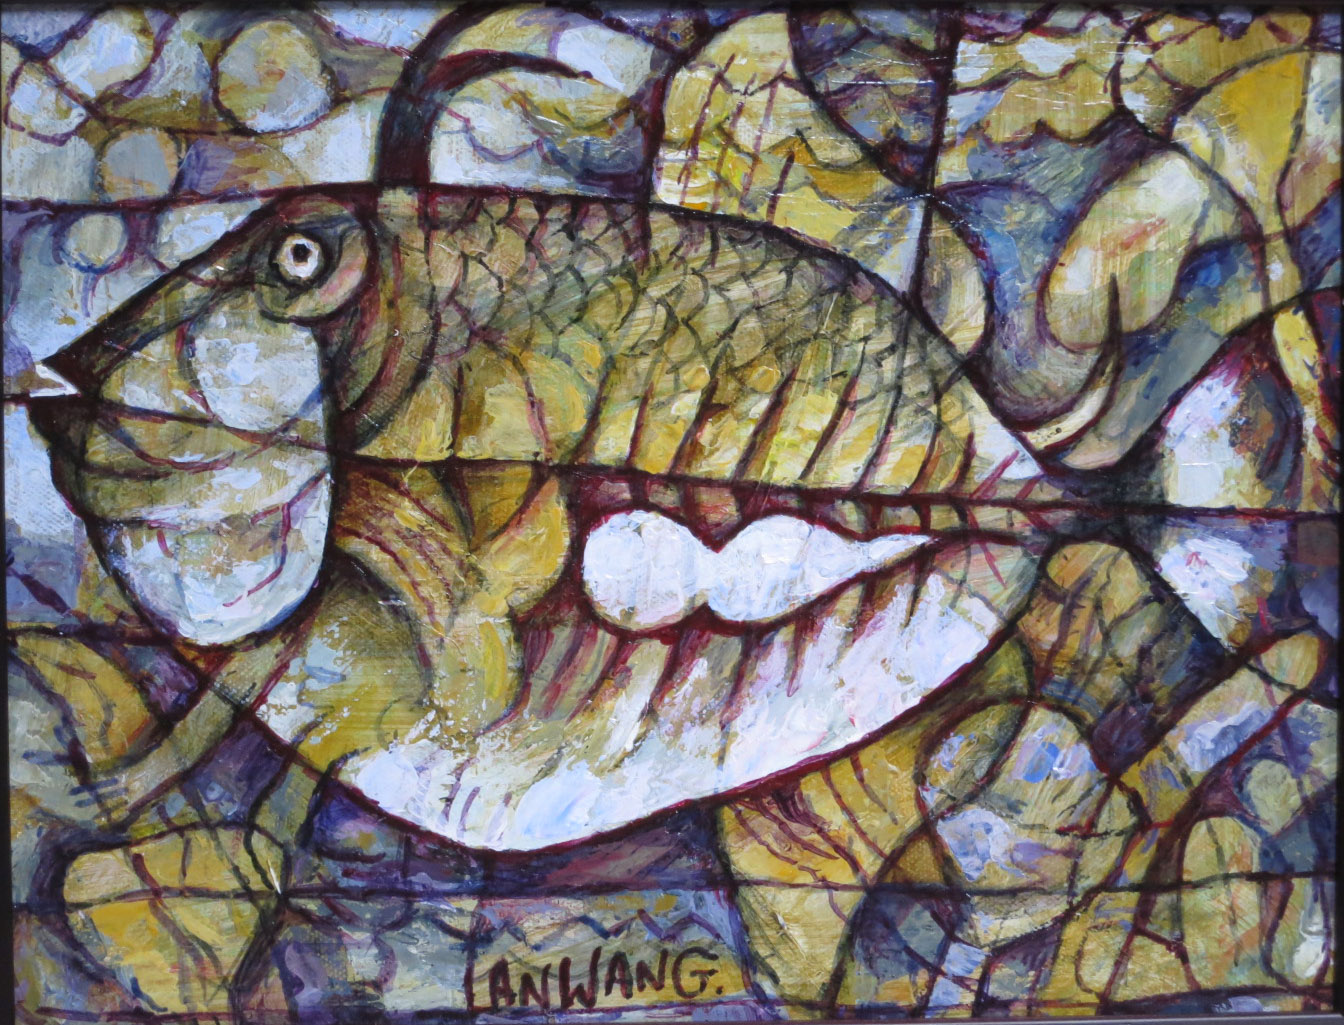 17-fishno1-2013-30-x-23-cm-canvas-350